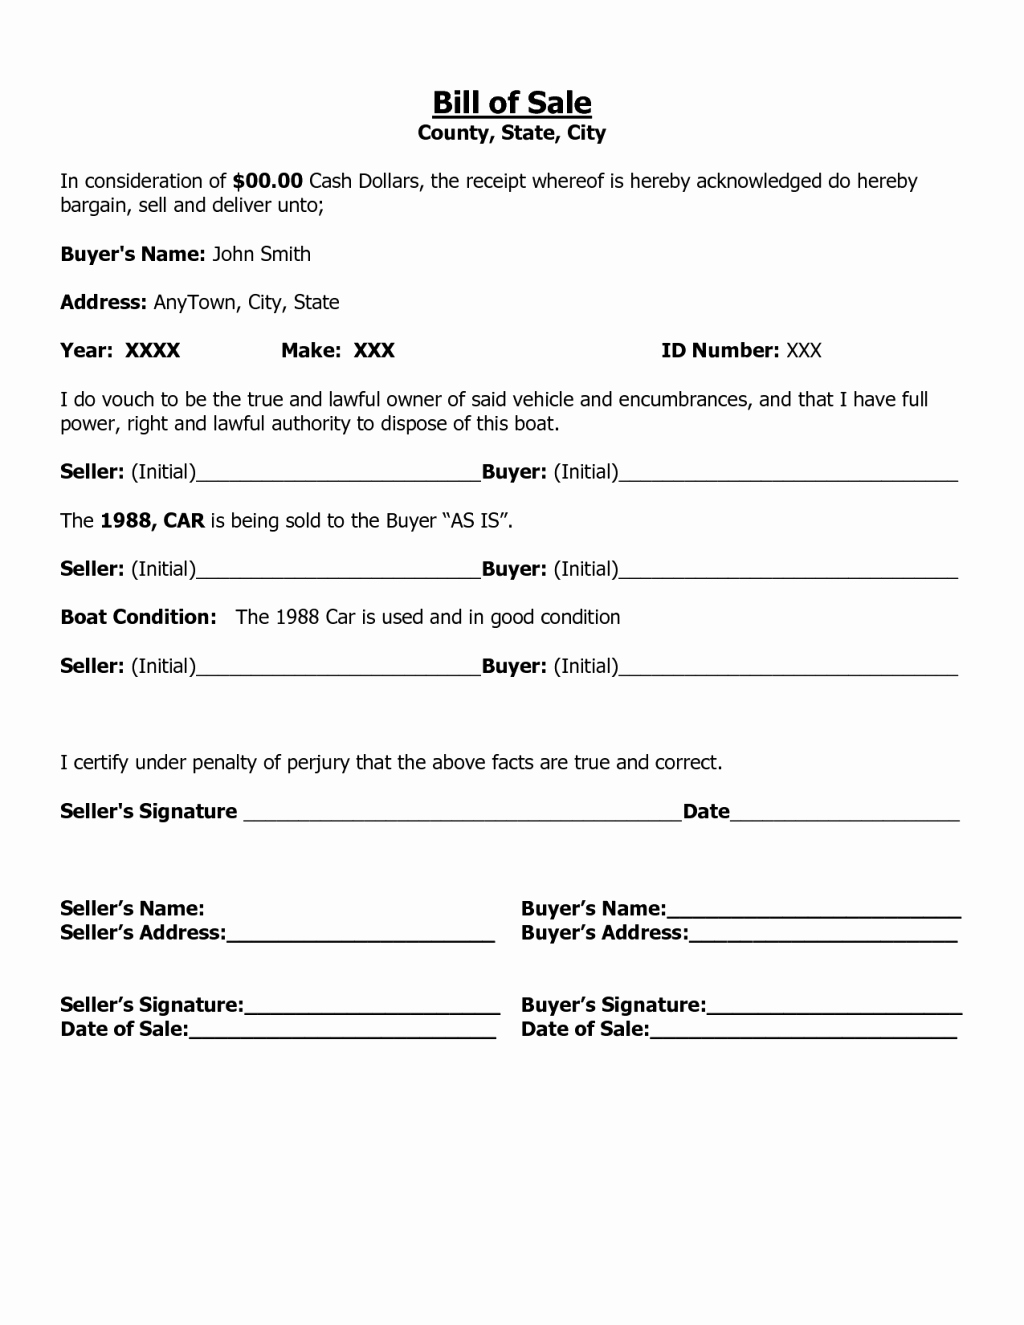 Bill Of Sale Blank Document Inspirational Bill Sale Sample Document Free Blank Invoice form